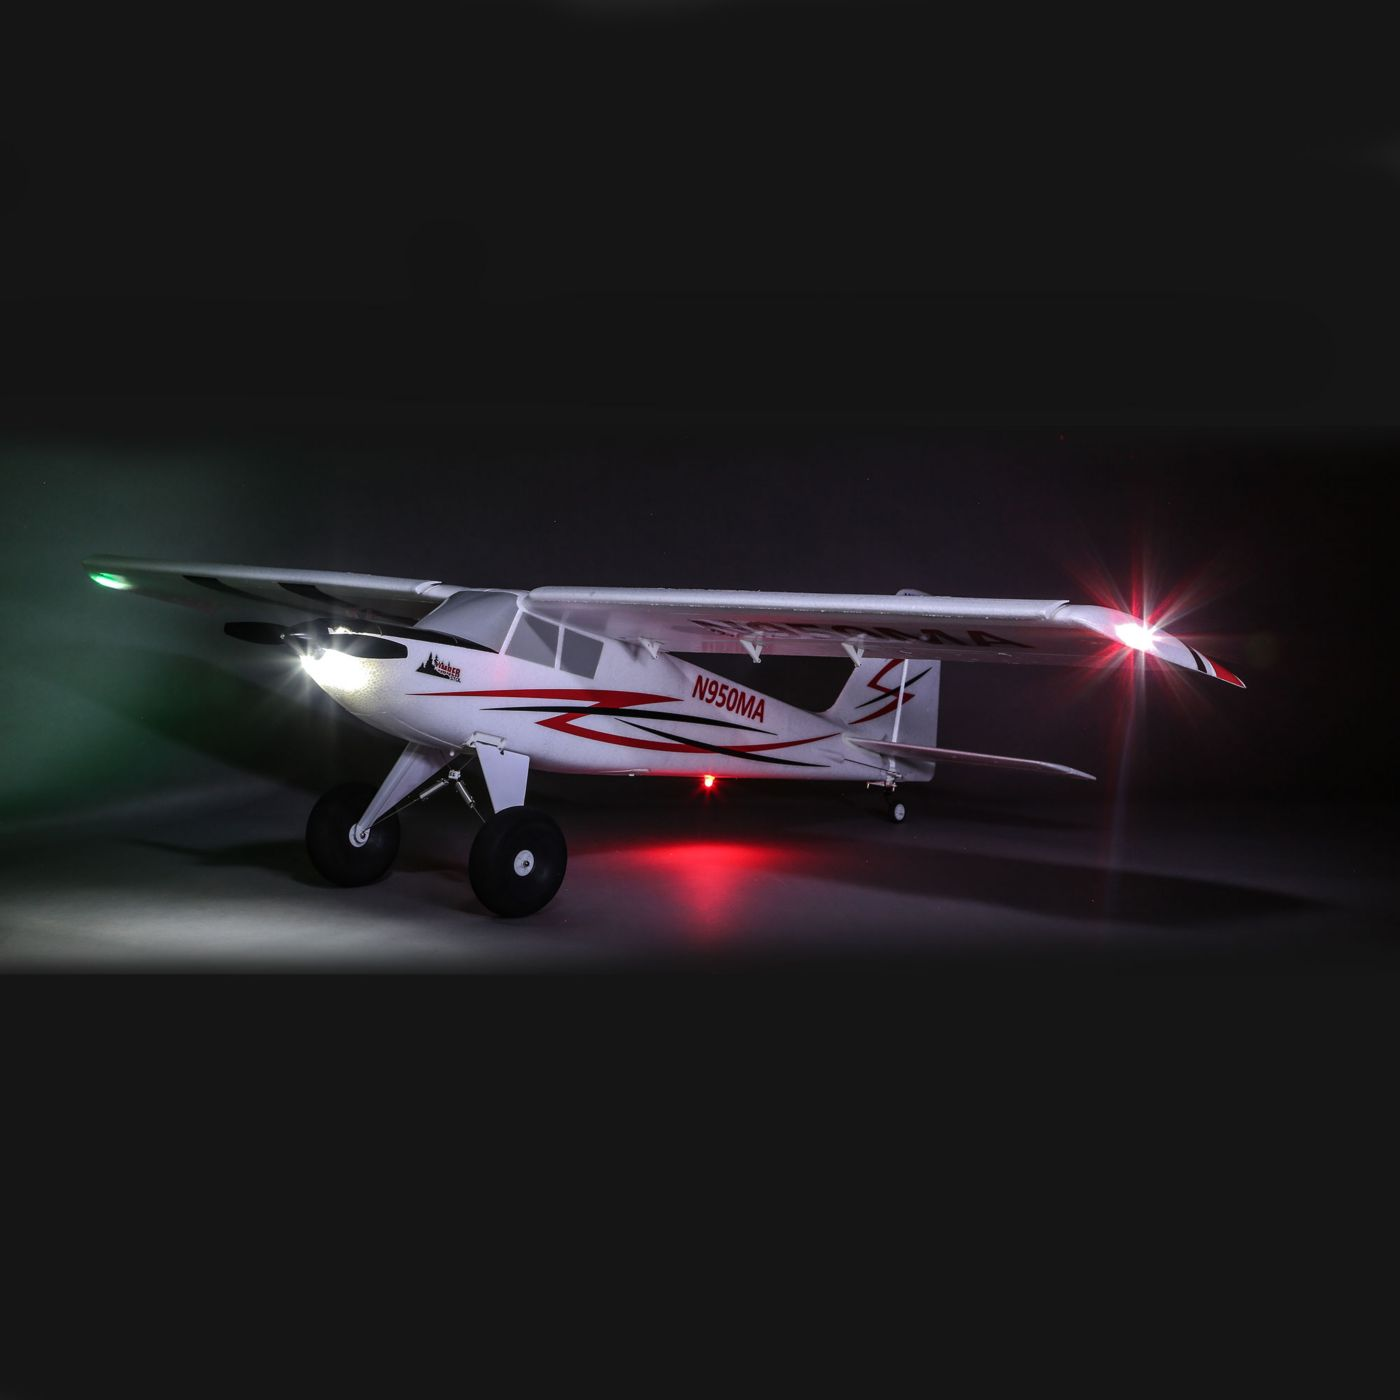 E-flite Timber 1 5m BNF Basic AS3X with Floats | Horizon Hobby